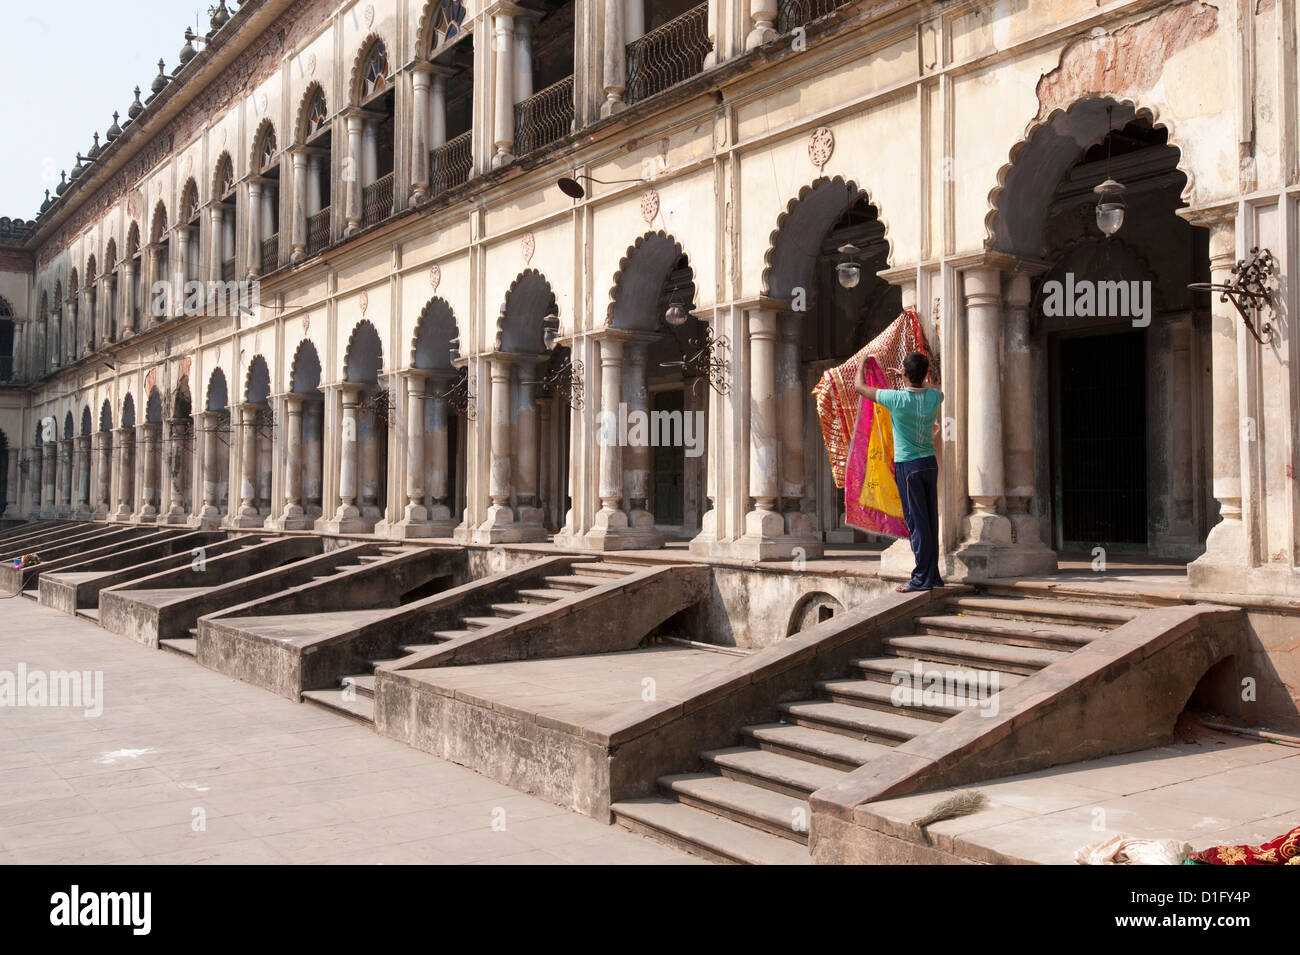 Man hanging out washed Quran cover cloths outside arched madrasa rooms in the Hugli Imambara, Hugli, West Bengal, - Stock Image